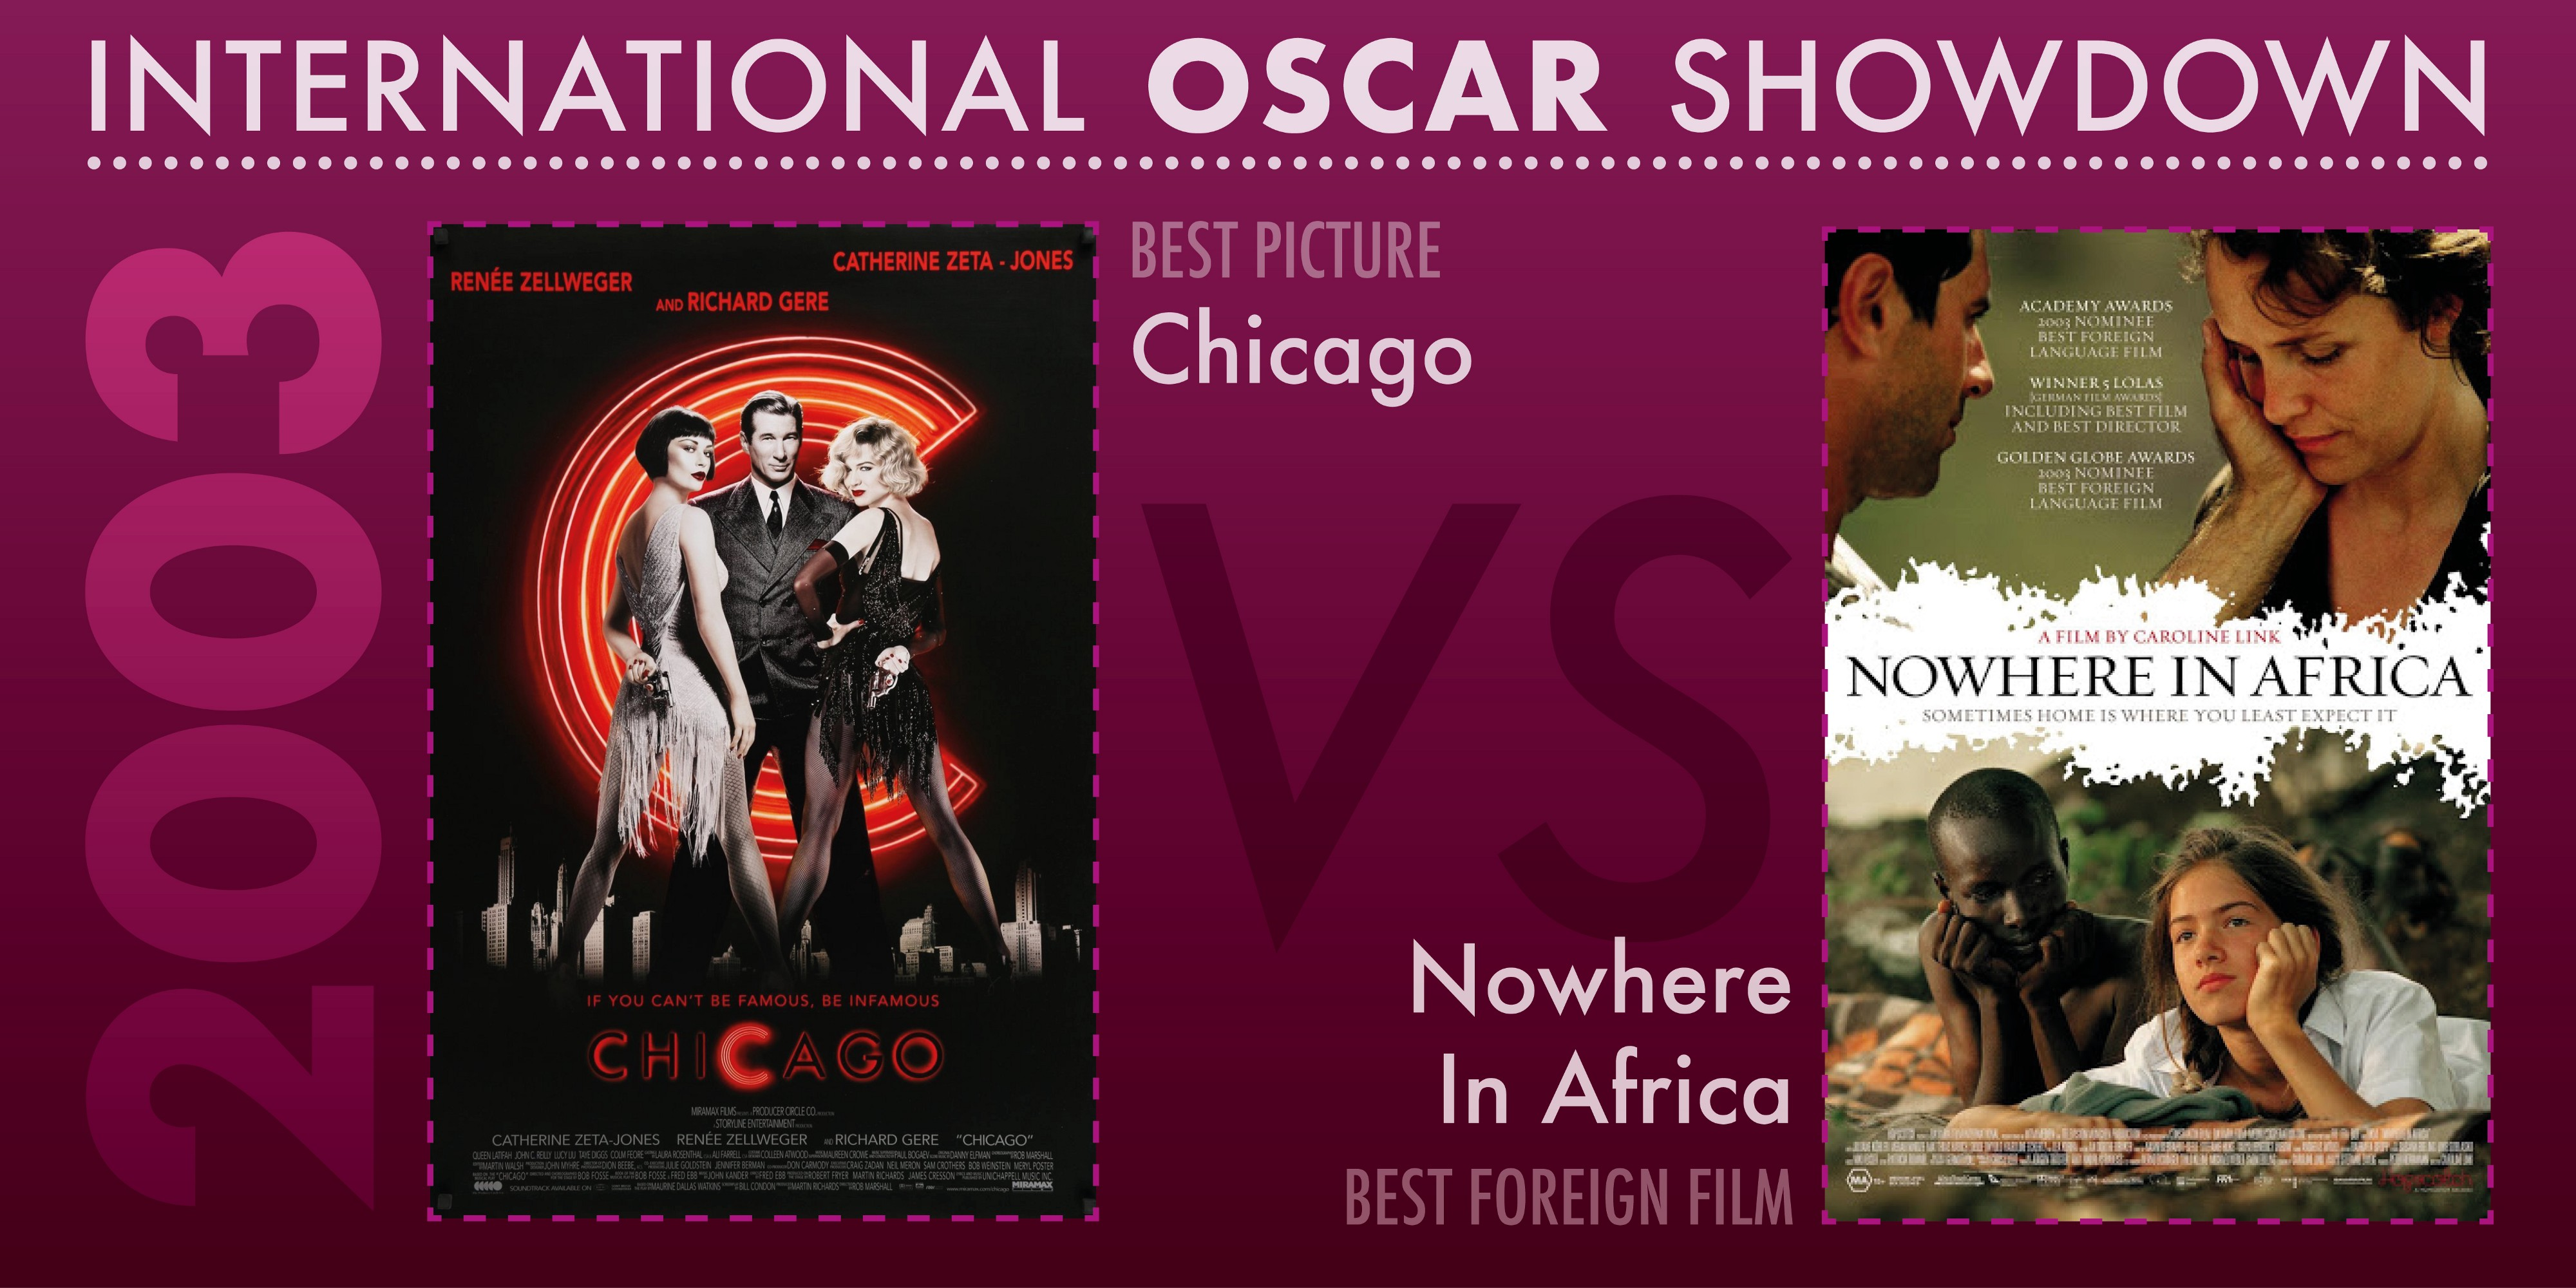 The 2003 International Oscar Showdown features Chicago versus Nowhere In Africa